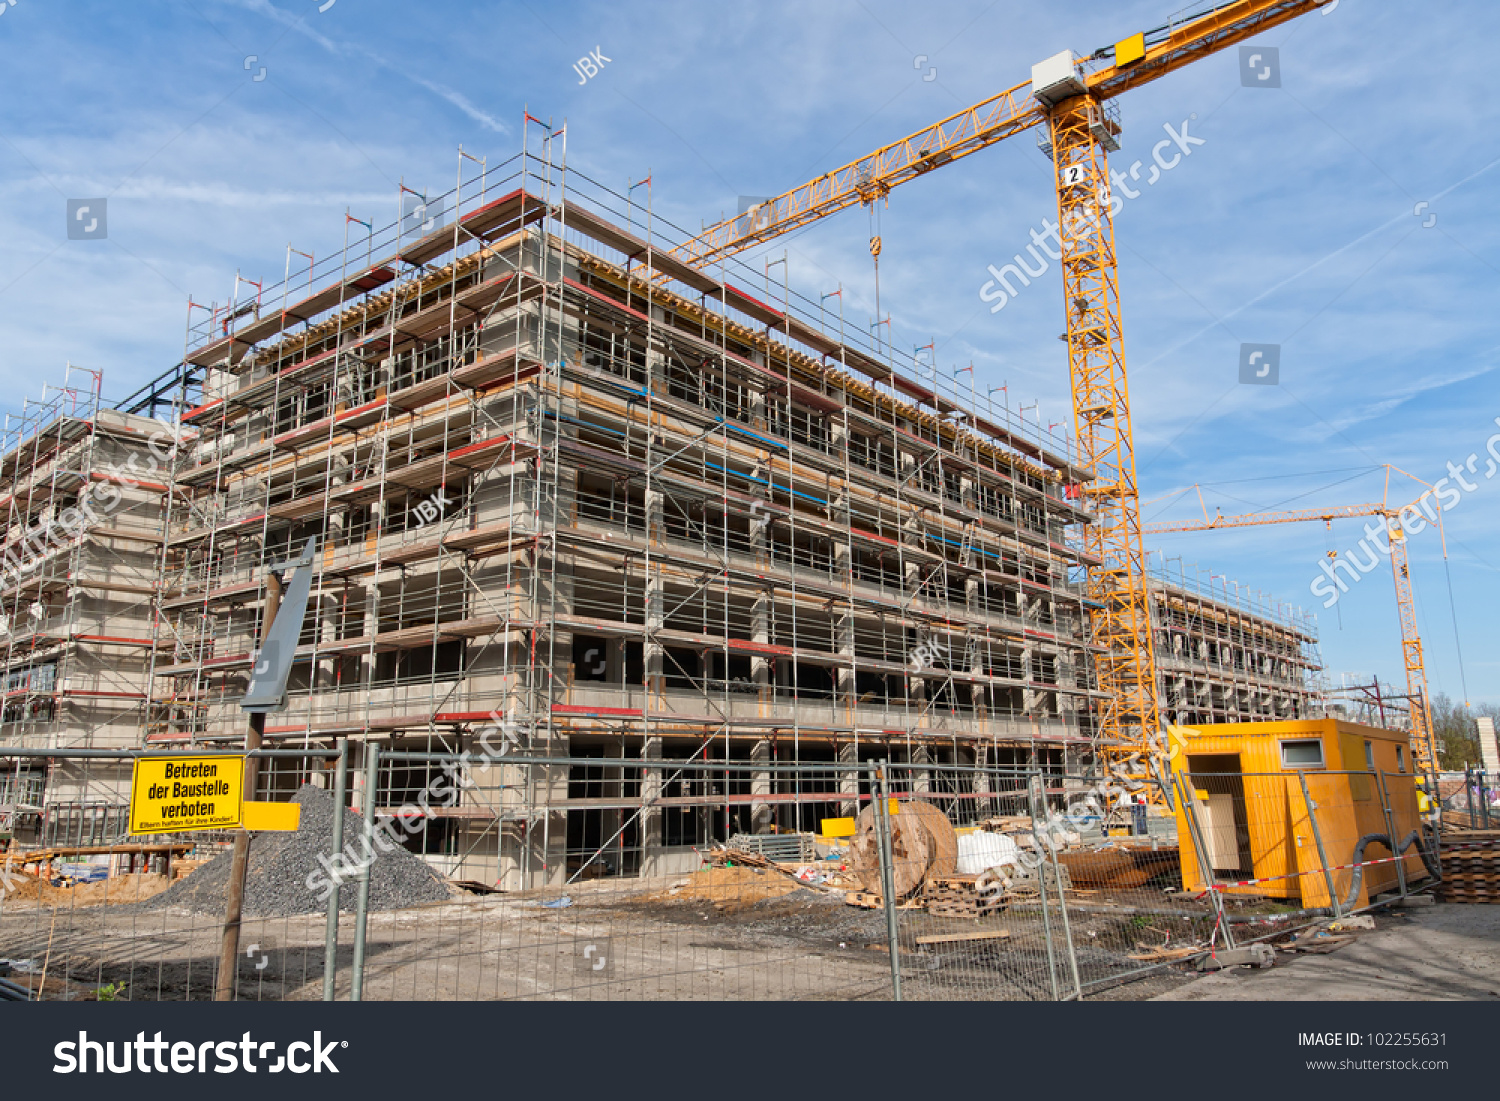 Large construction site scaffolding building yellow stock for Images of building sites